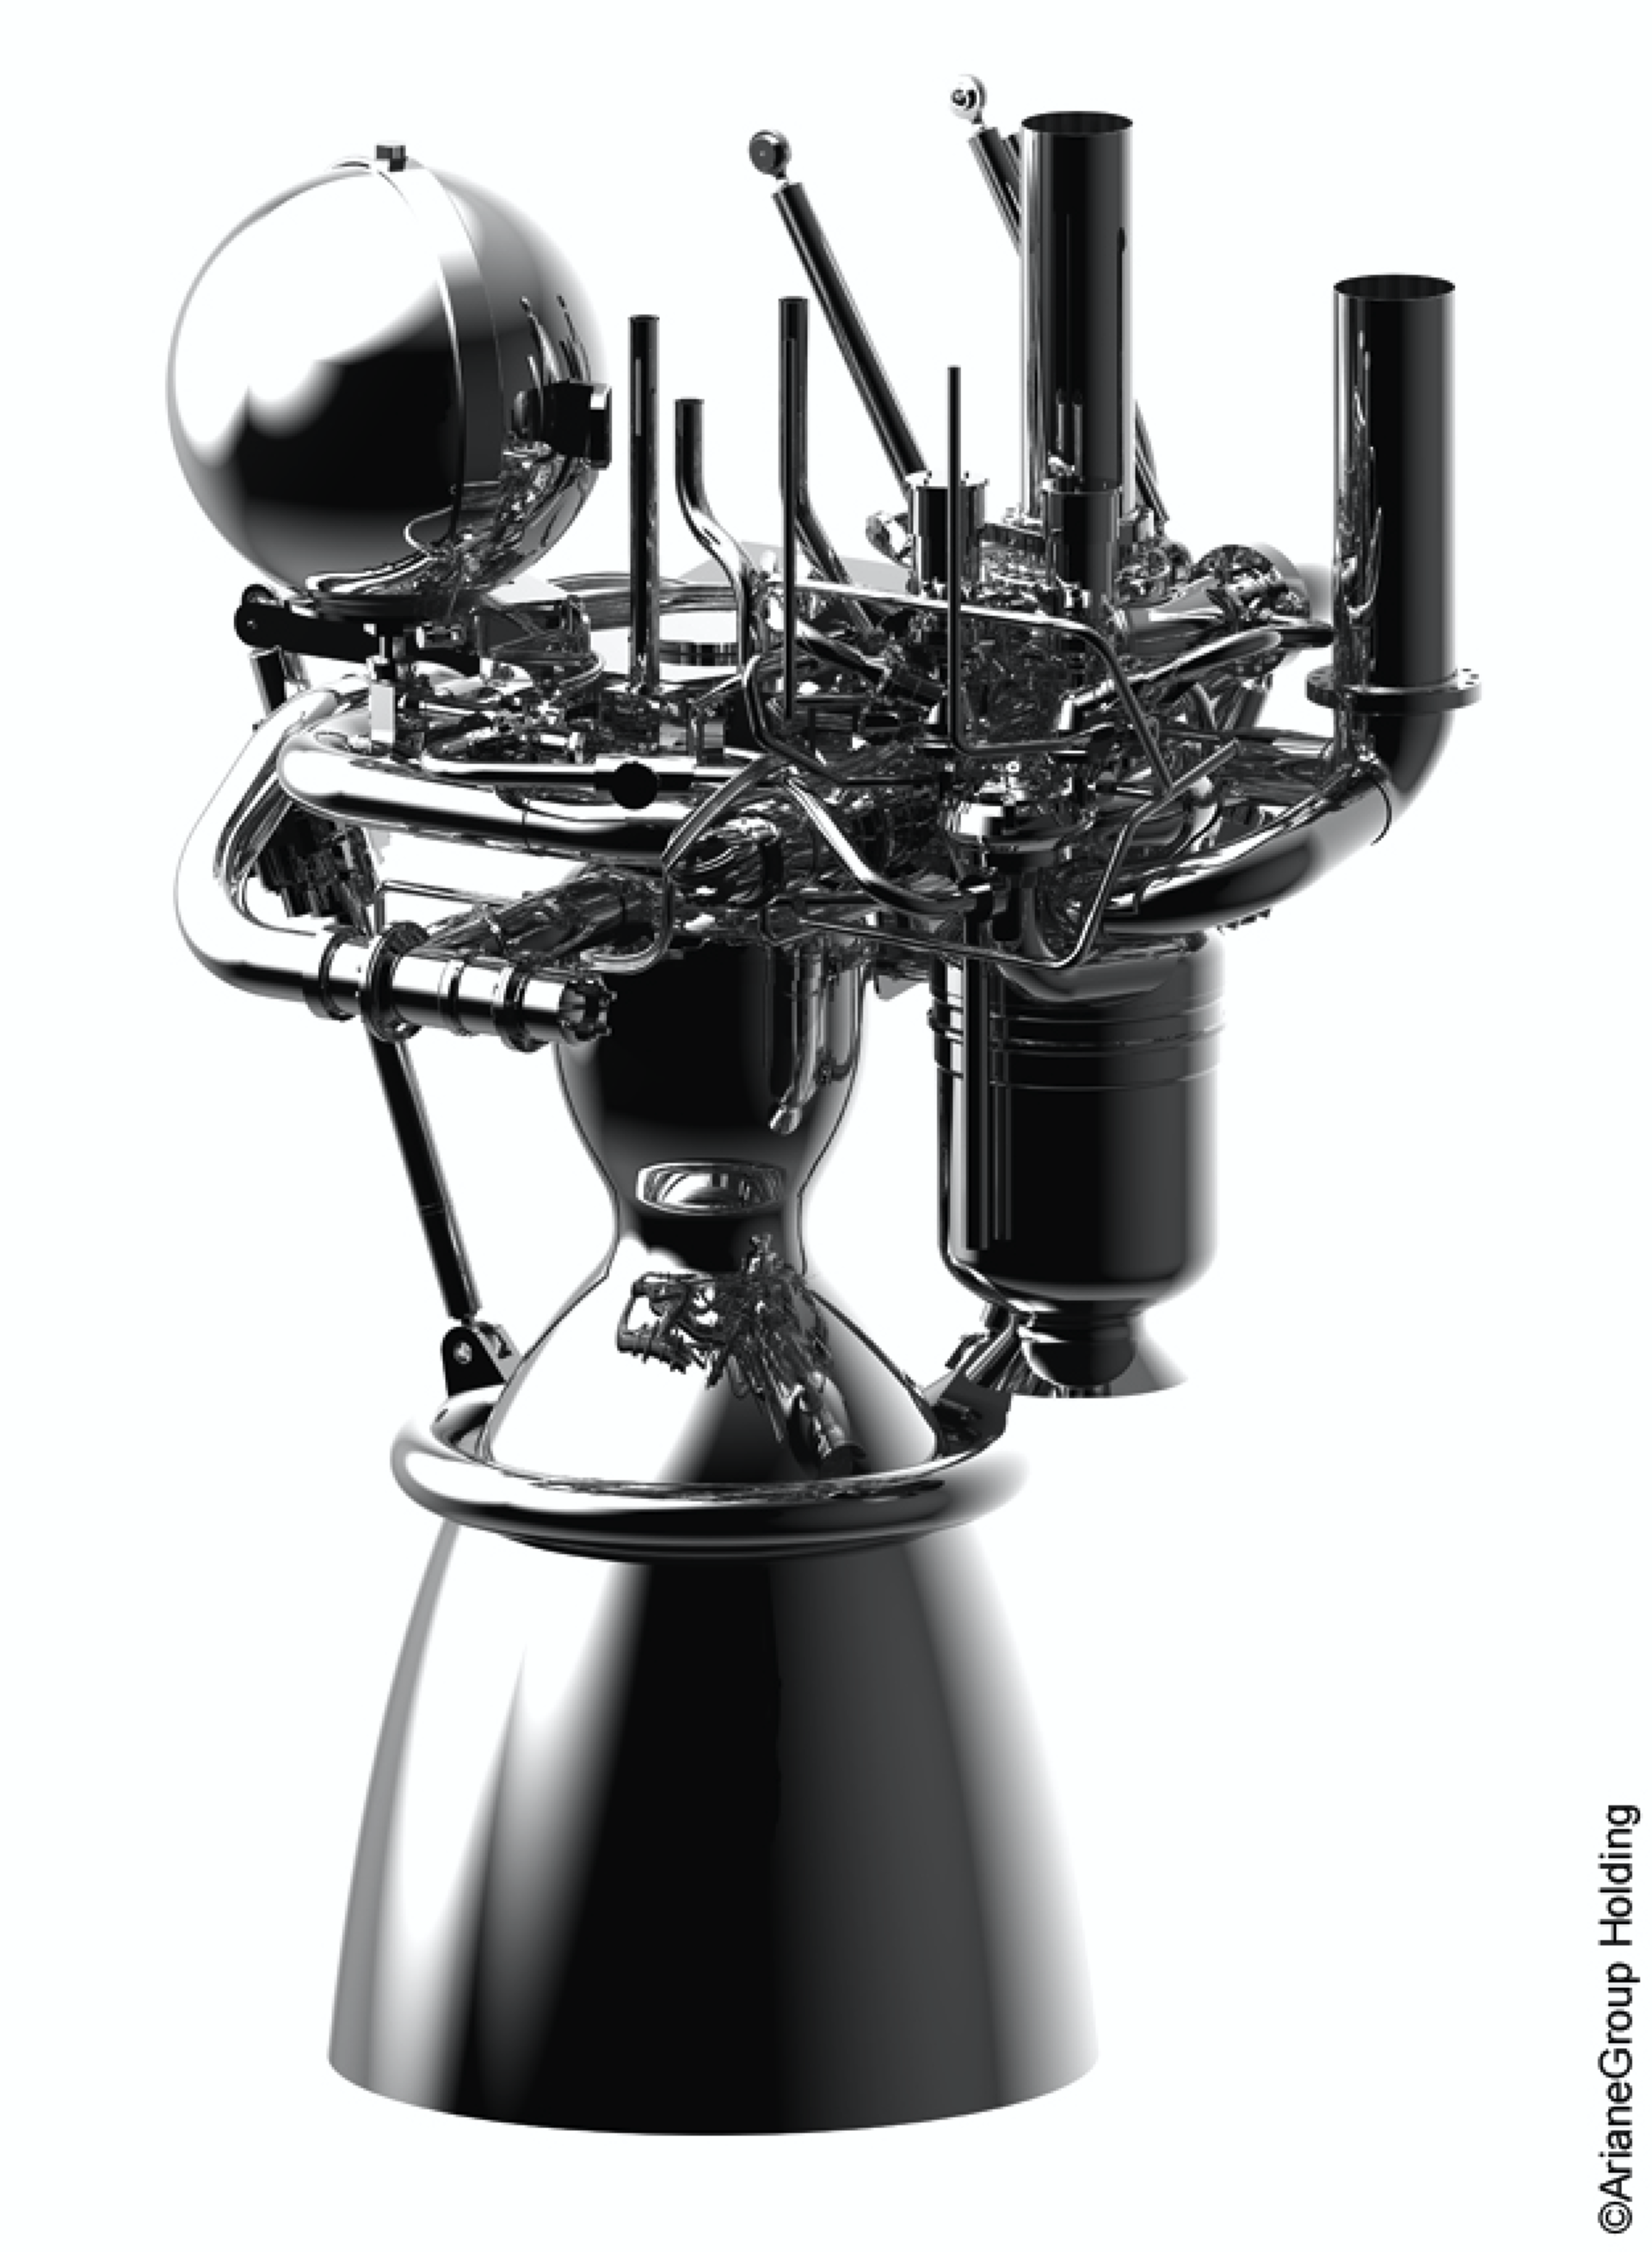 The Prometheus engine. Photo via ArianeGroup.